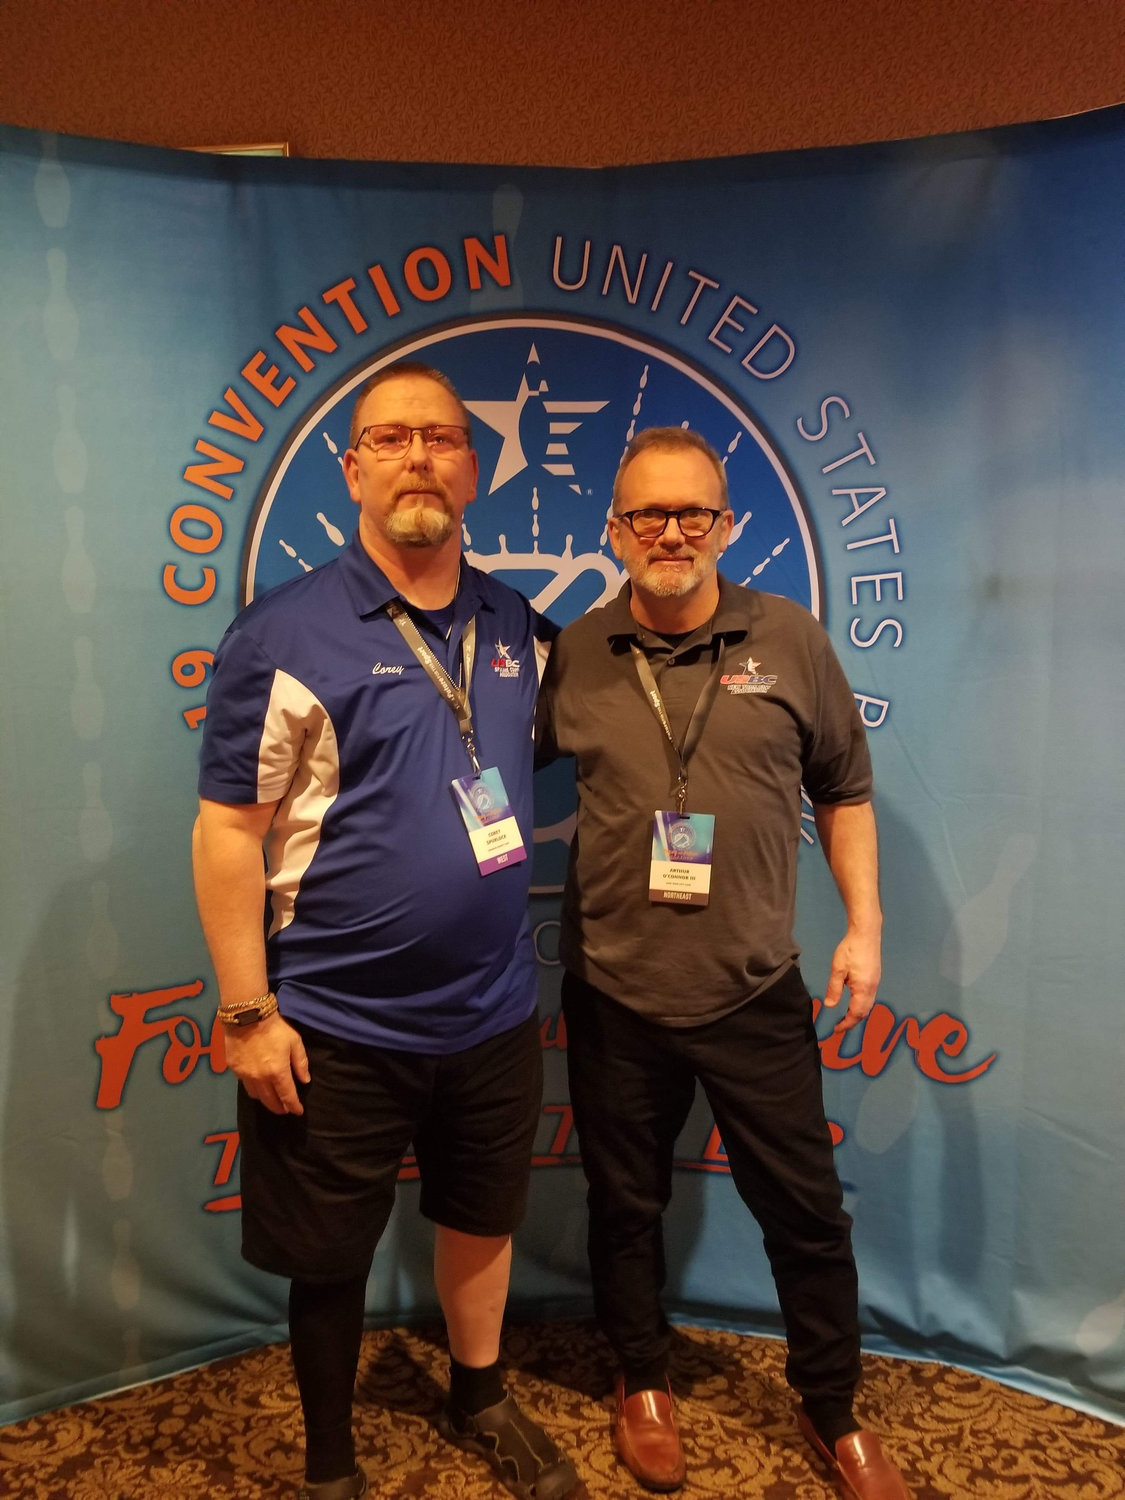 West Hempstead bowling coach Arthur O'Connor, right, was named as the 2021 David Dahms Coach of the Year. Above, he is pictured with Corey Spurlock, president of the Spokane County USBC Association in Washington.